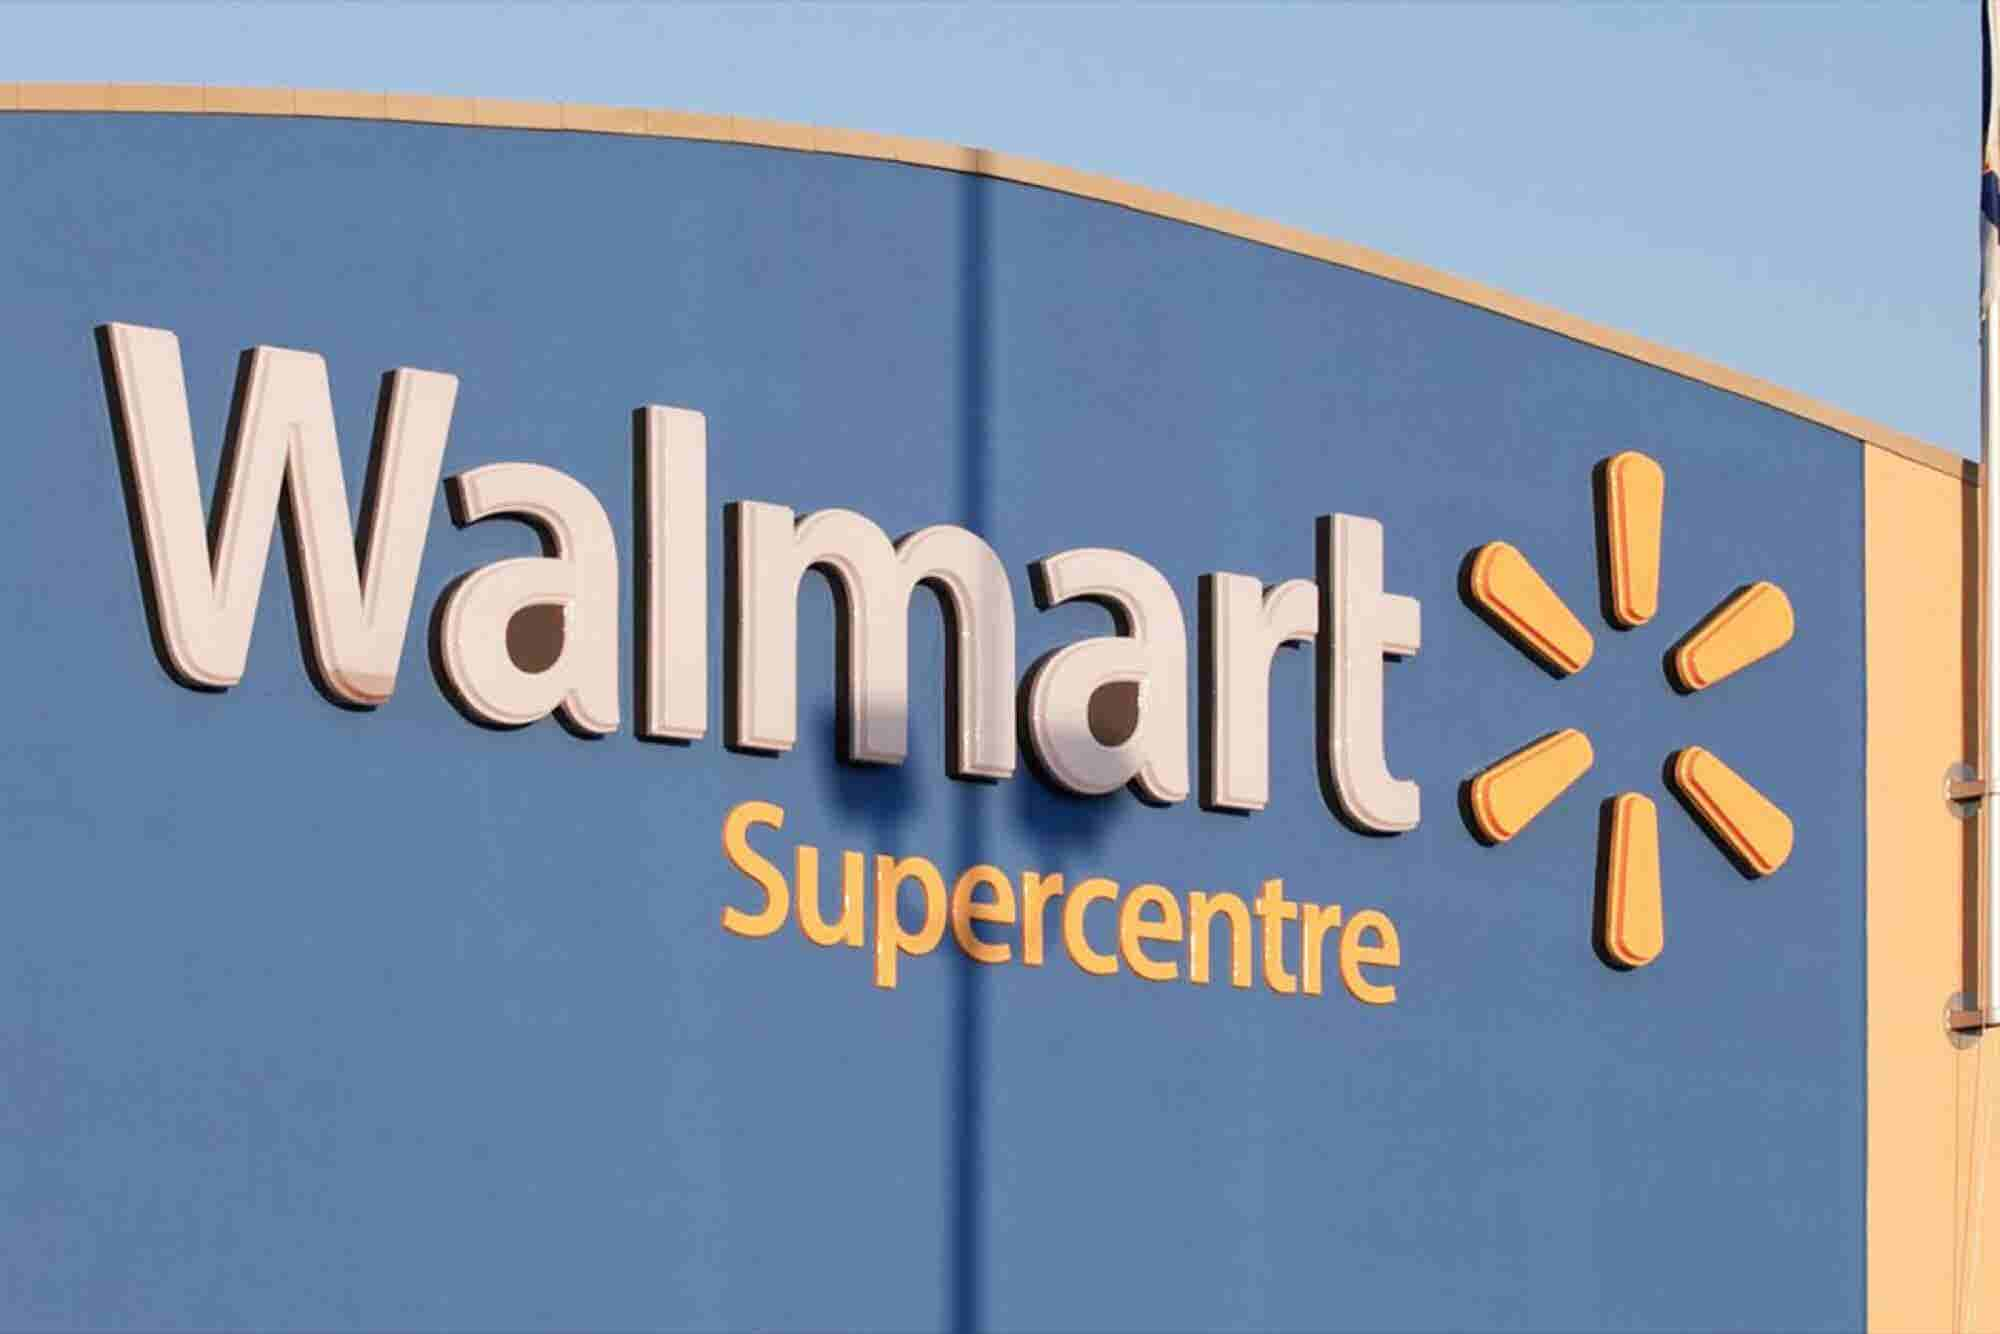 Wal-Mart Eats Humble Pie After Publishing 'Fat Girl' Halloween Costume...